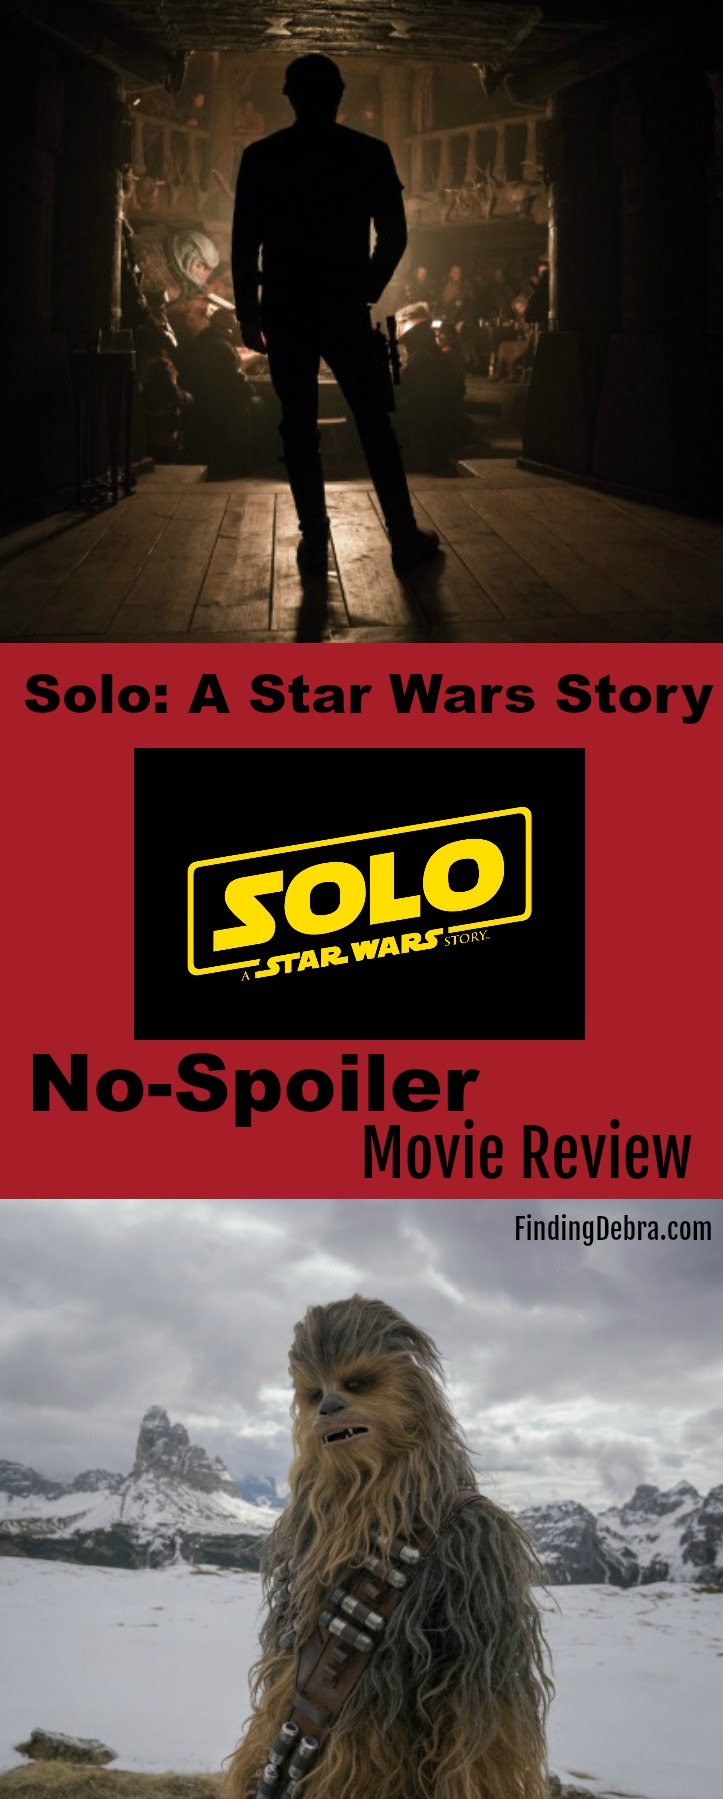 Solo A Star Wars Story Movie Review - No Spoilers